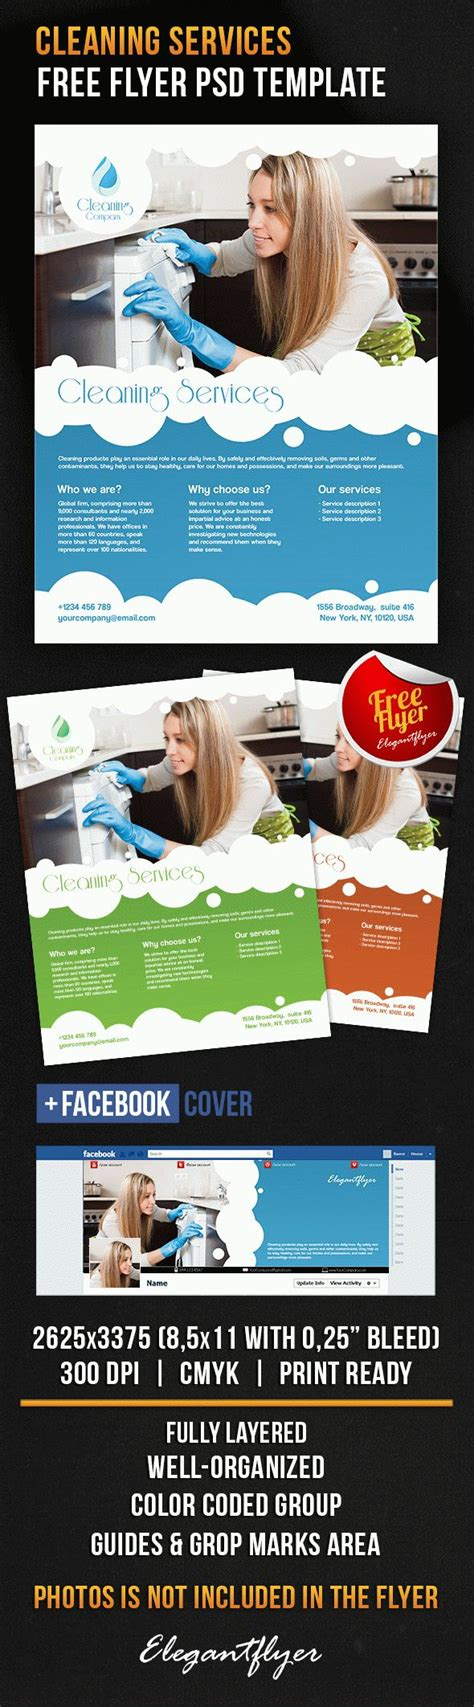 Cleaning Services Bi Fold Template By Elegantflyer Cleaning Services Free Flyer Psd Template By Elegantflyer